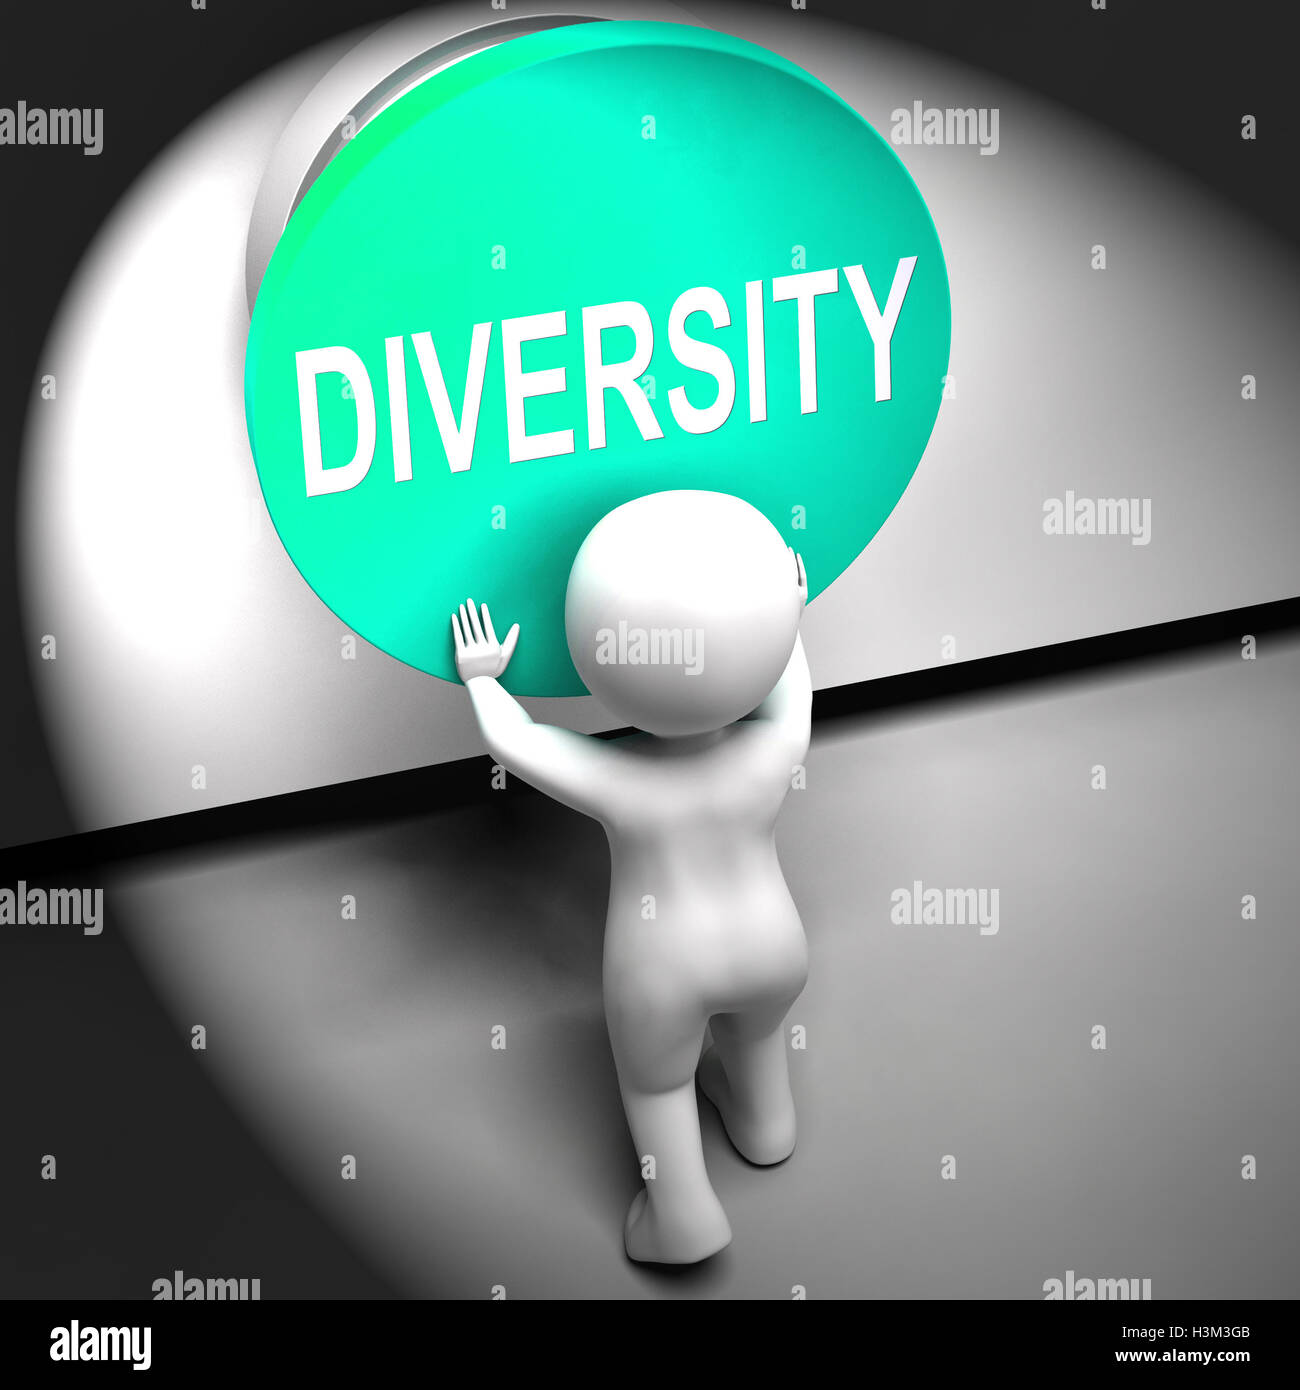 Diversity Pressed Means Variety Difference Or Multi-Cultural - Stock Image